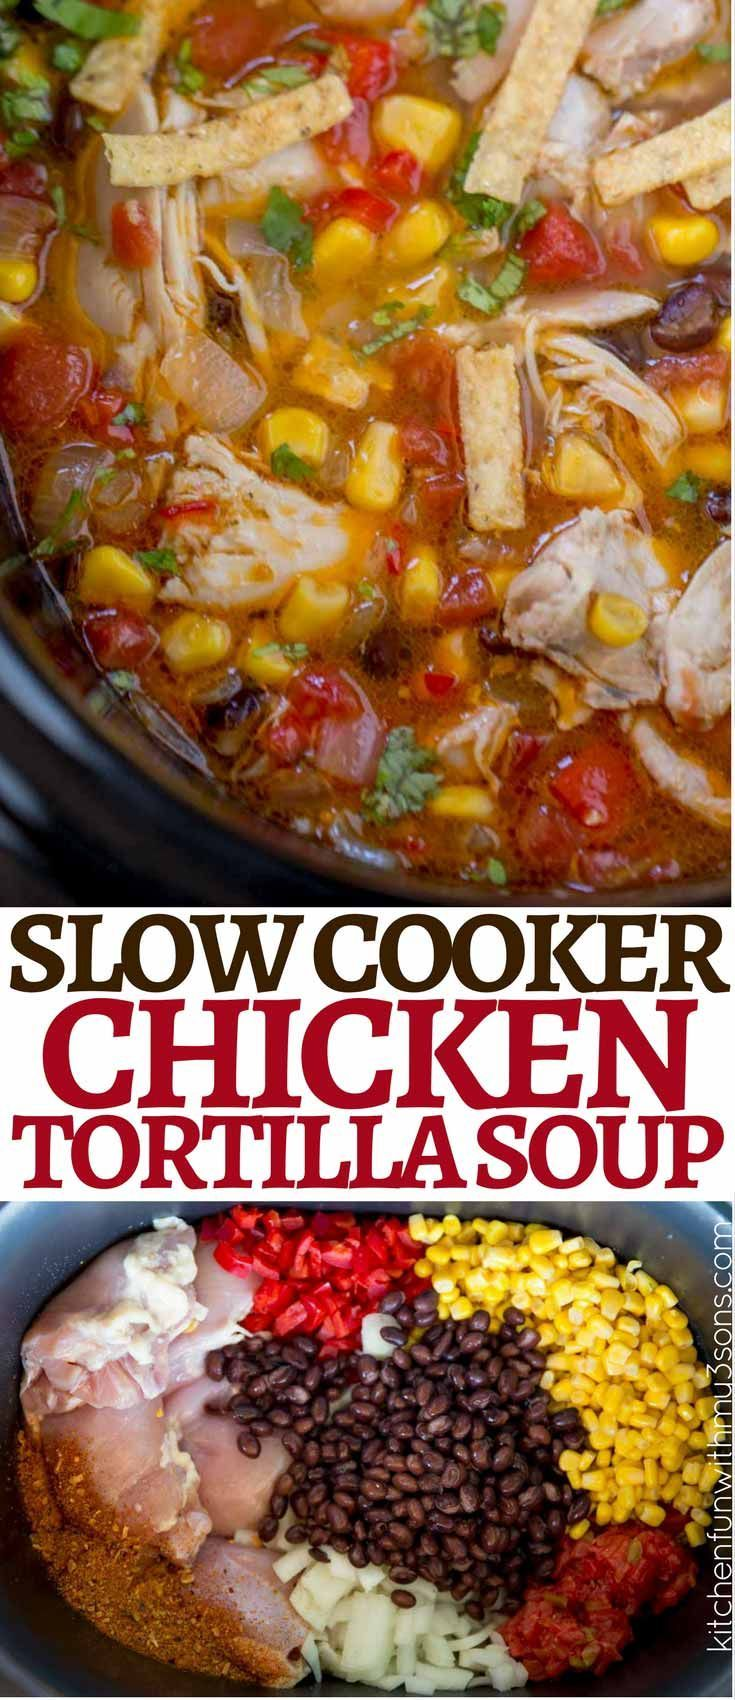 Slow Cooker Chicken Tortilla Soup is the perfect dump and cook soup that will keep you warm as the weather cools down and it's healthy to boot!